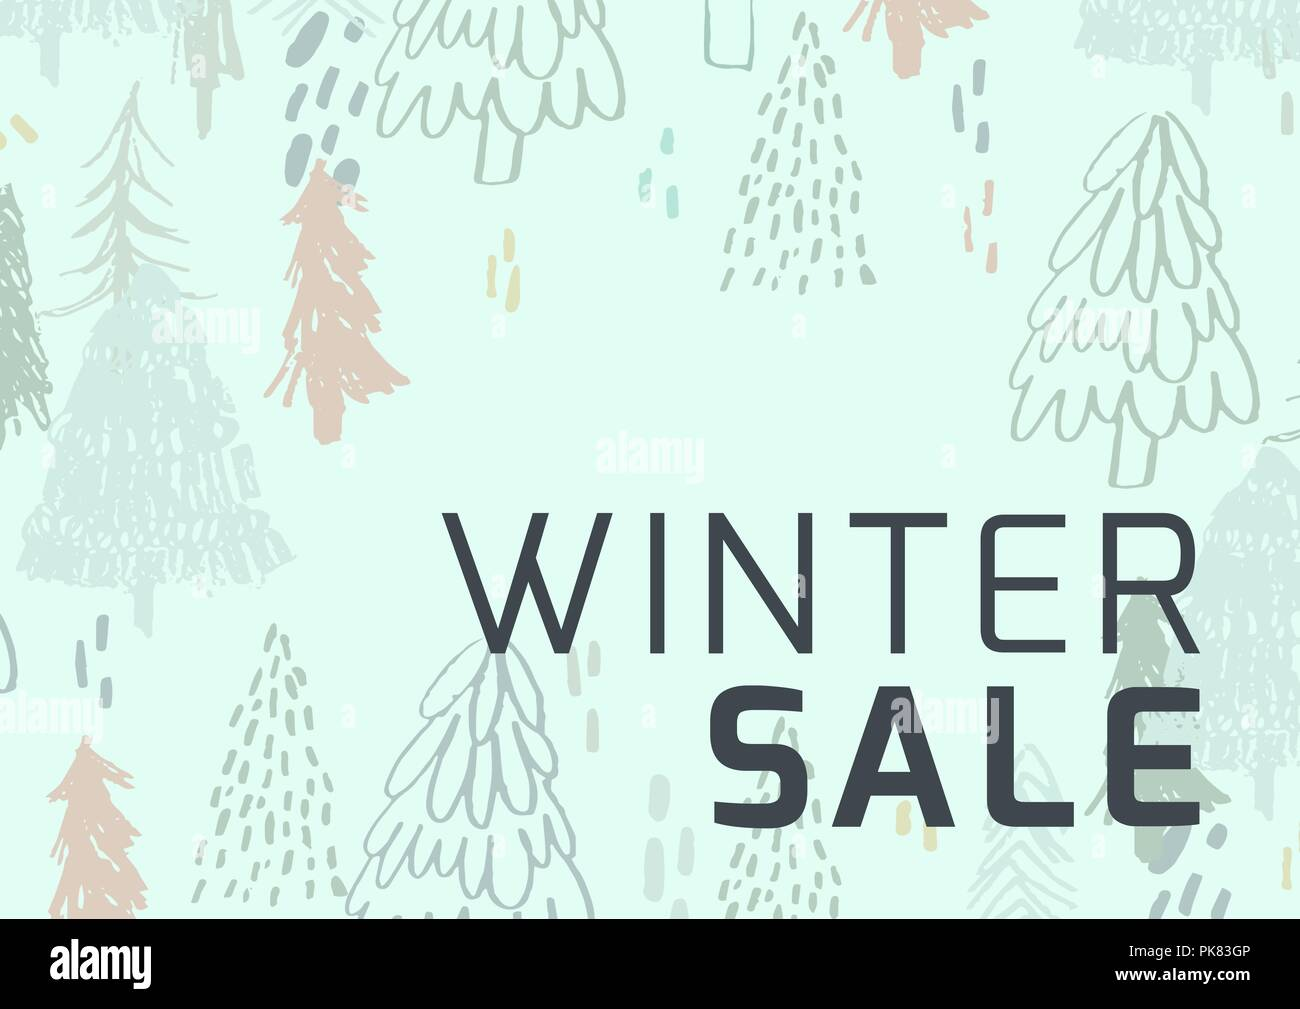 Winter Sale Illustrated Style with firs and green background - Stock Image